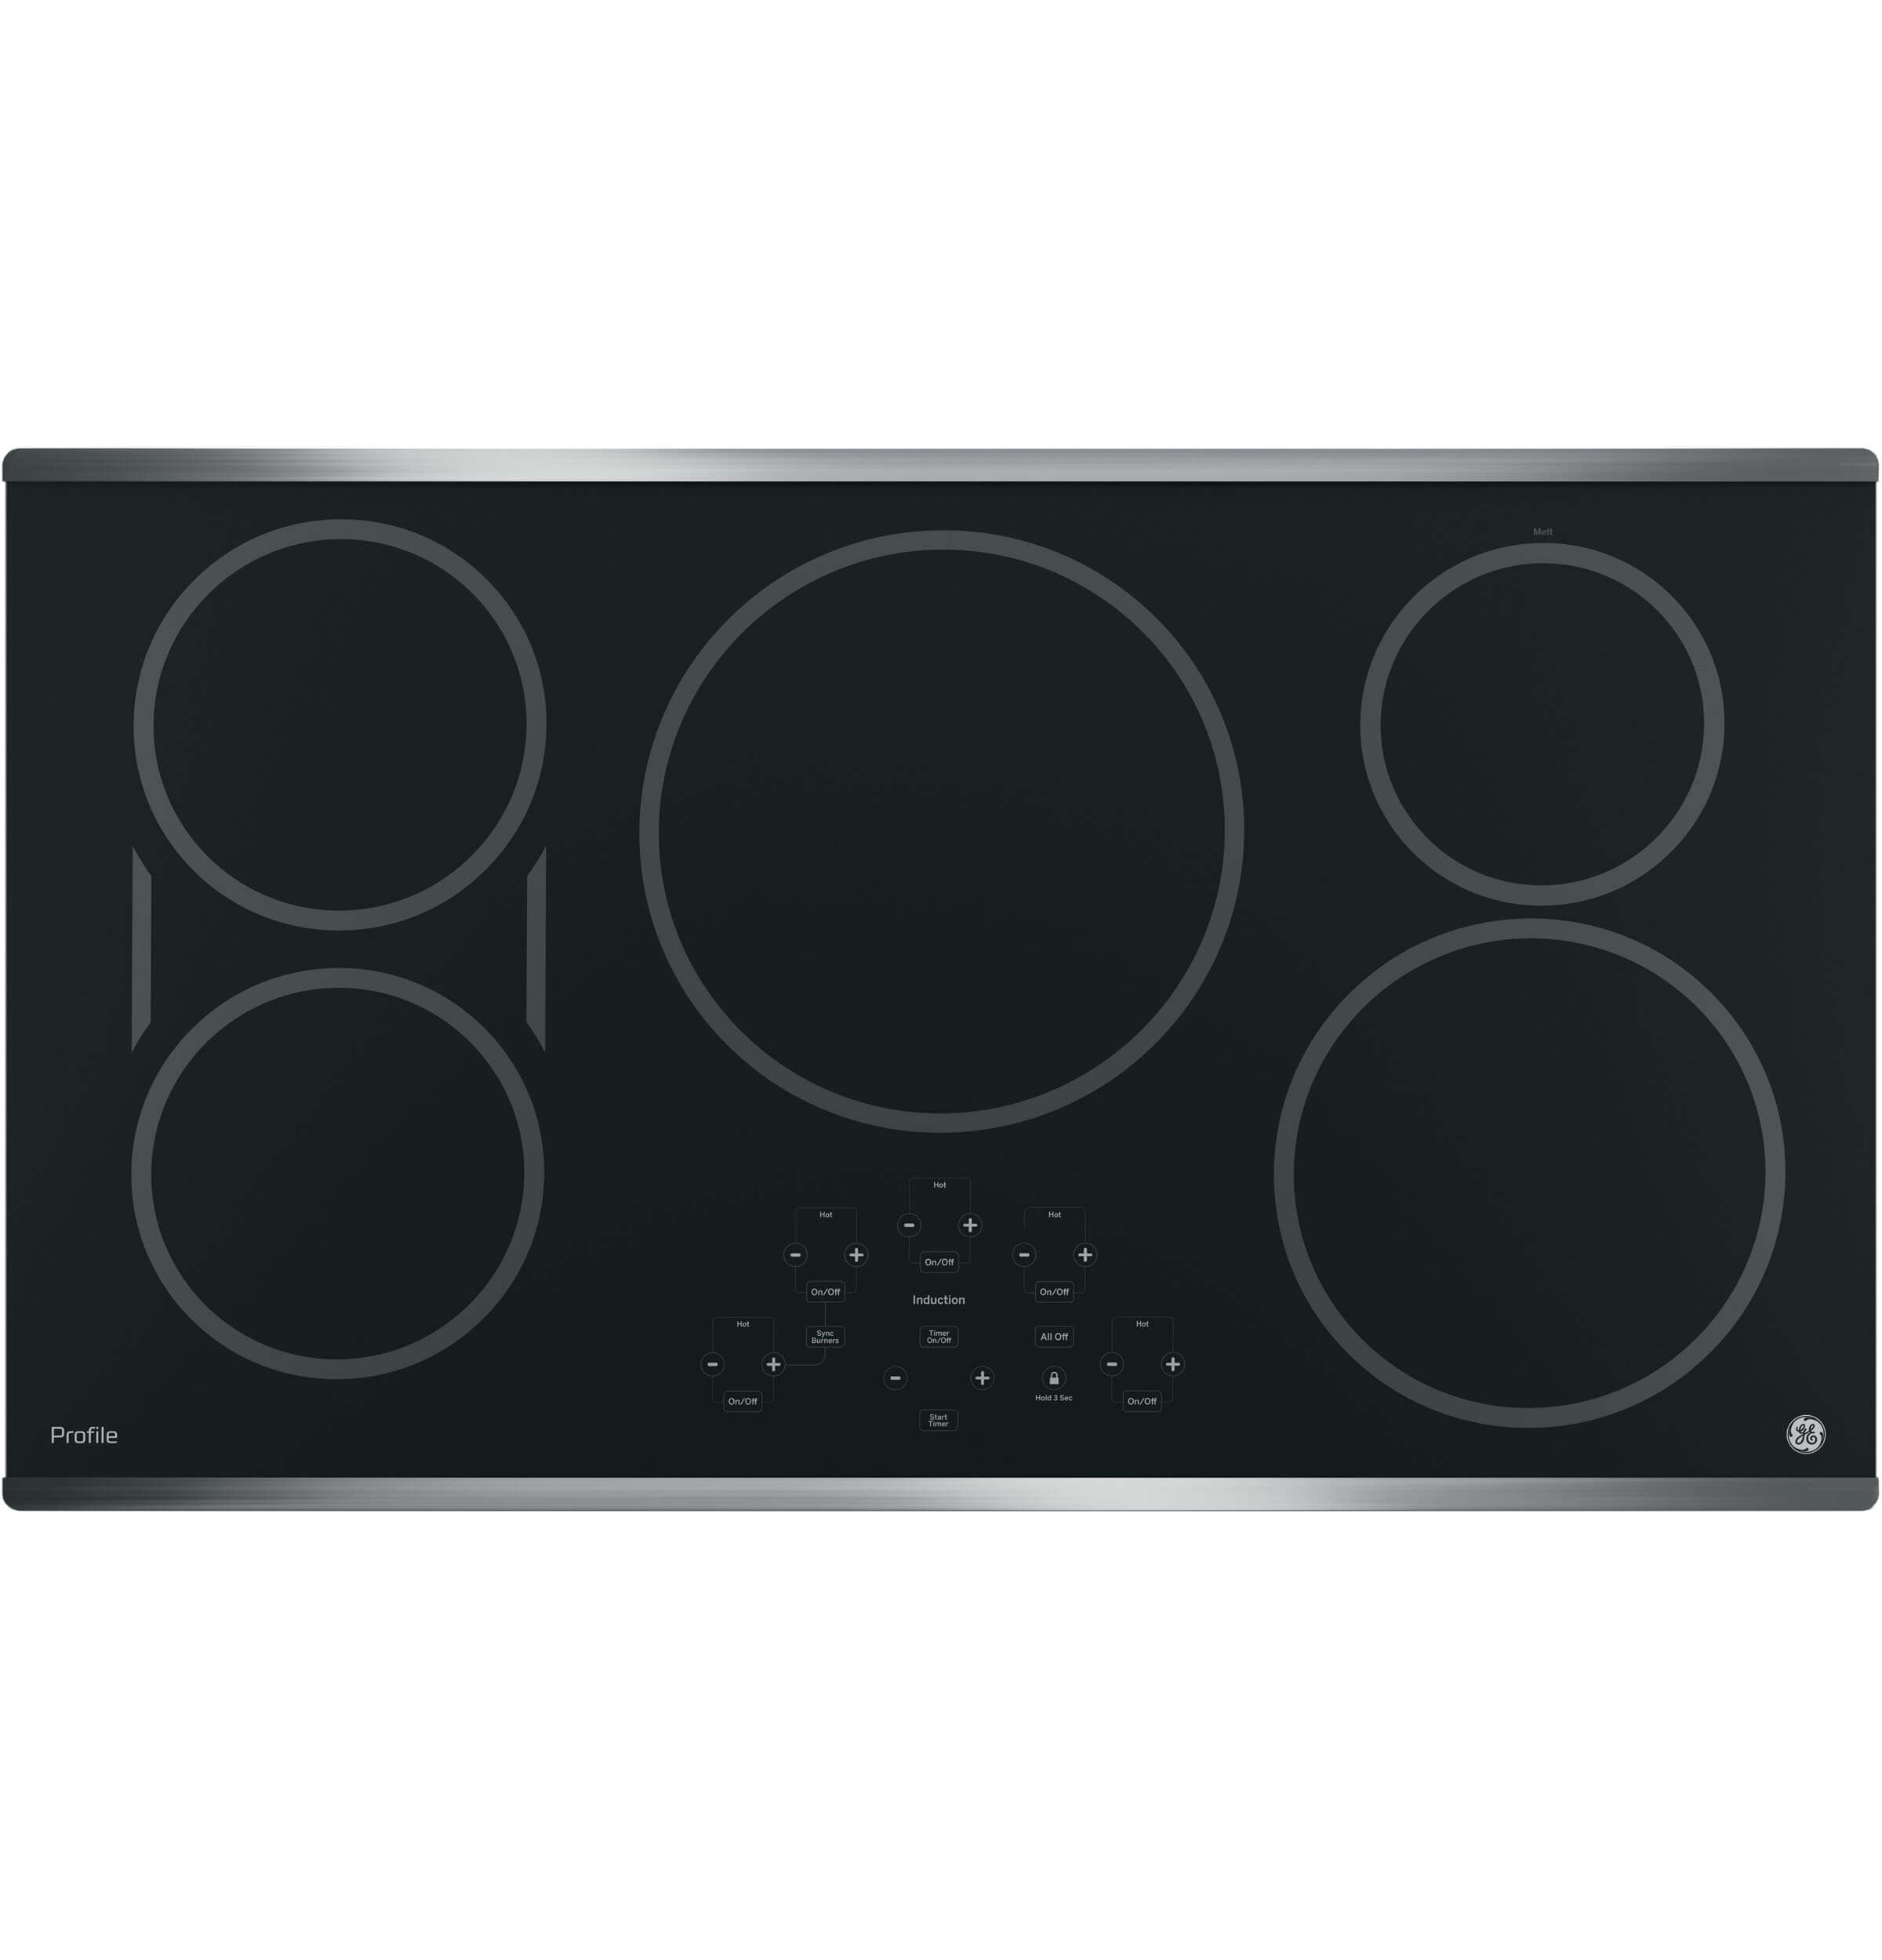 36 inch Stainless 5 Burner Induction Cooktop